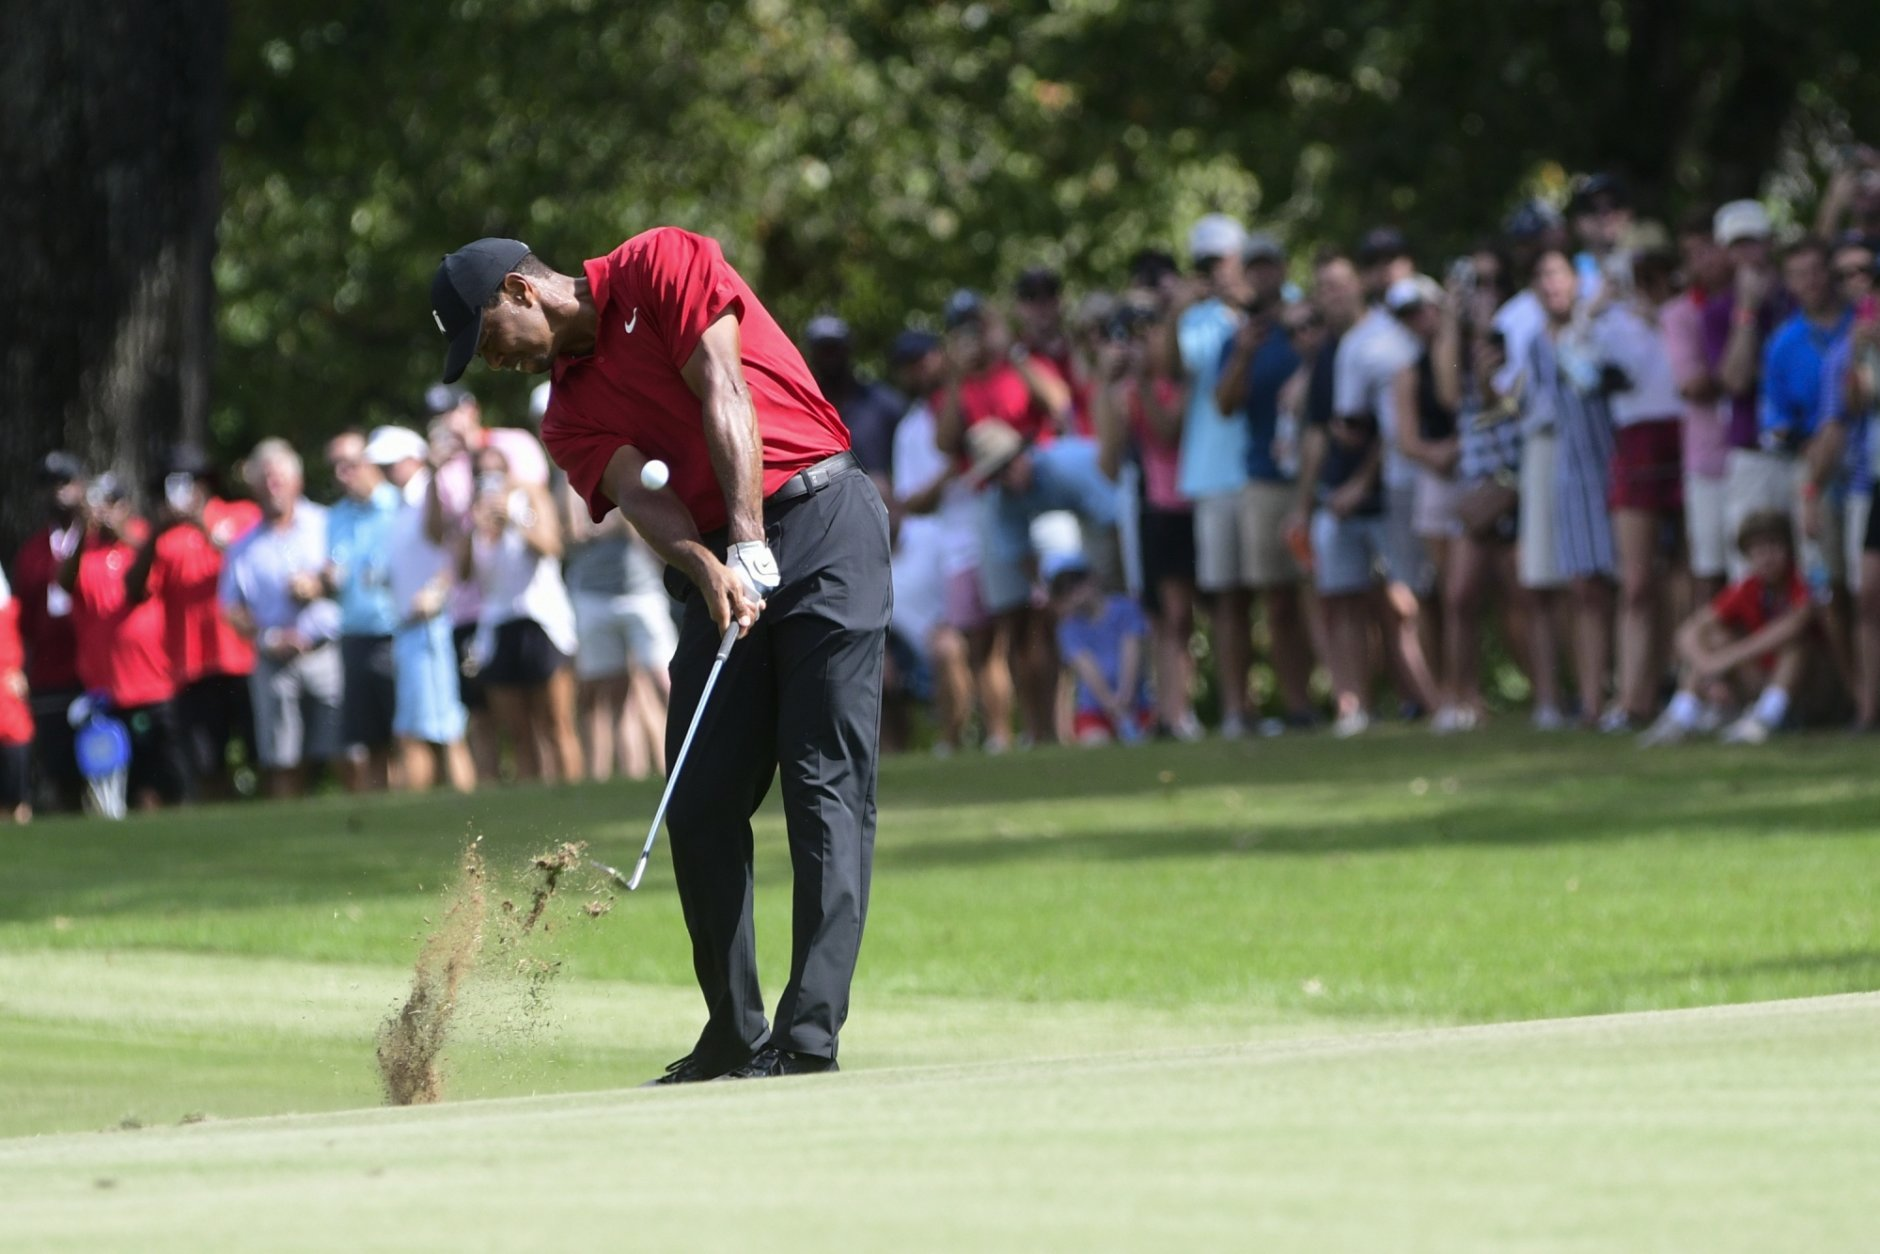 Tiger Woods hits from the fifth fairway during the final round of the Tour Championship golf tournament Sunday, Sept. 23, 2018, in Atlanta. (AP Photo/John Amis)